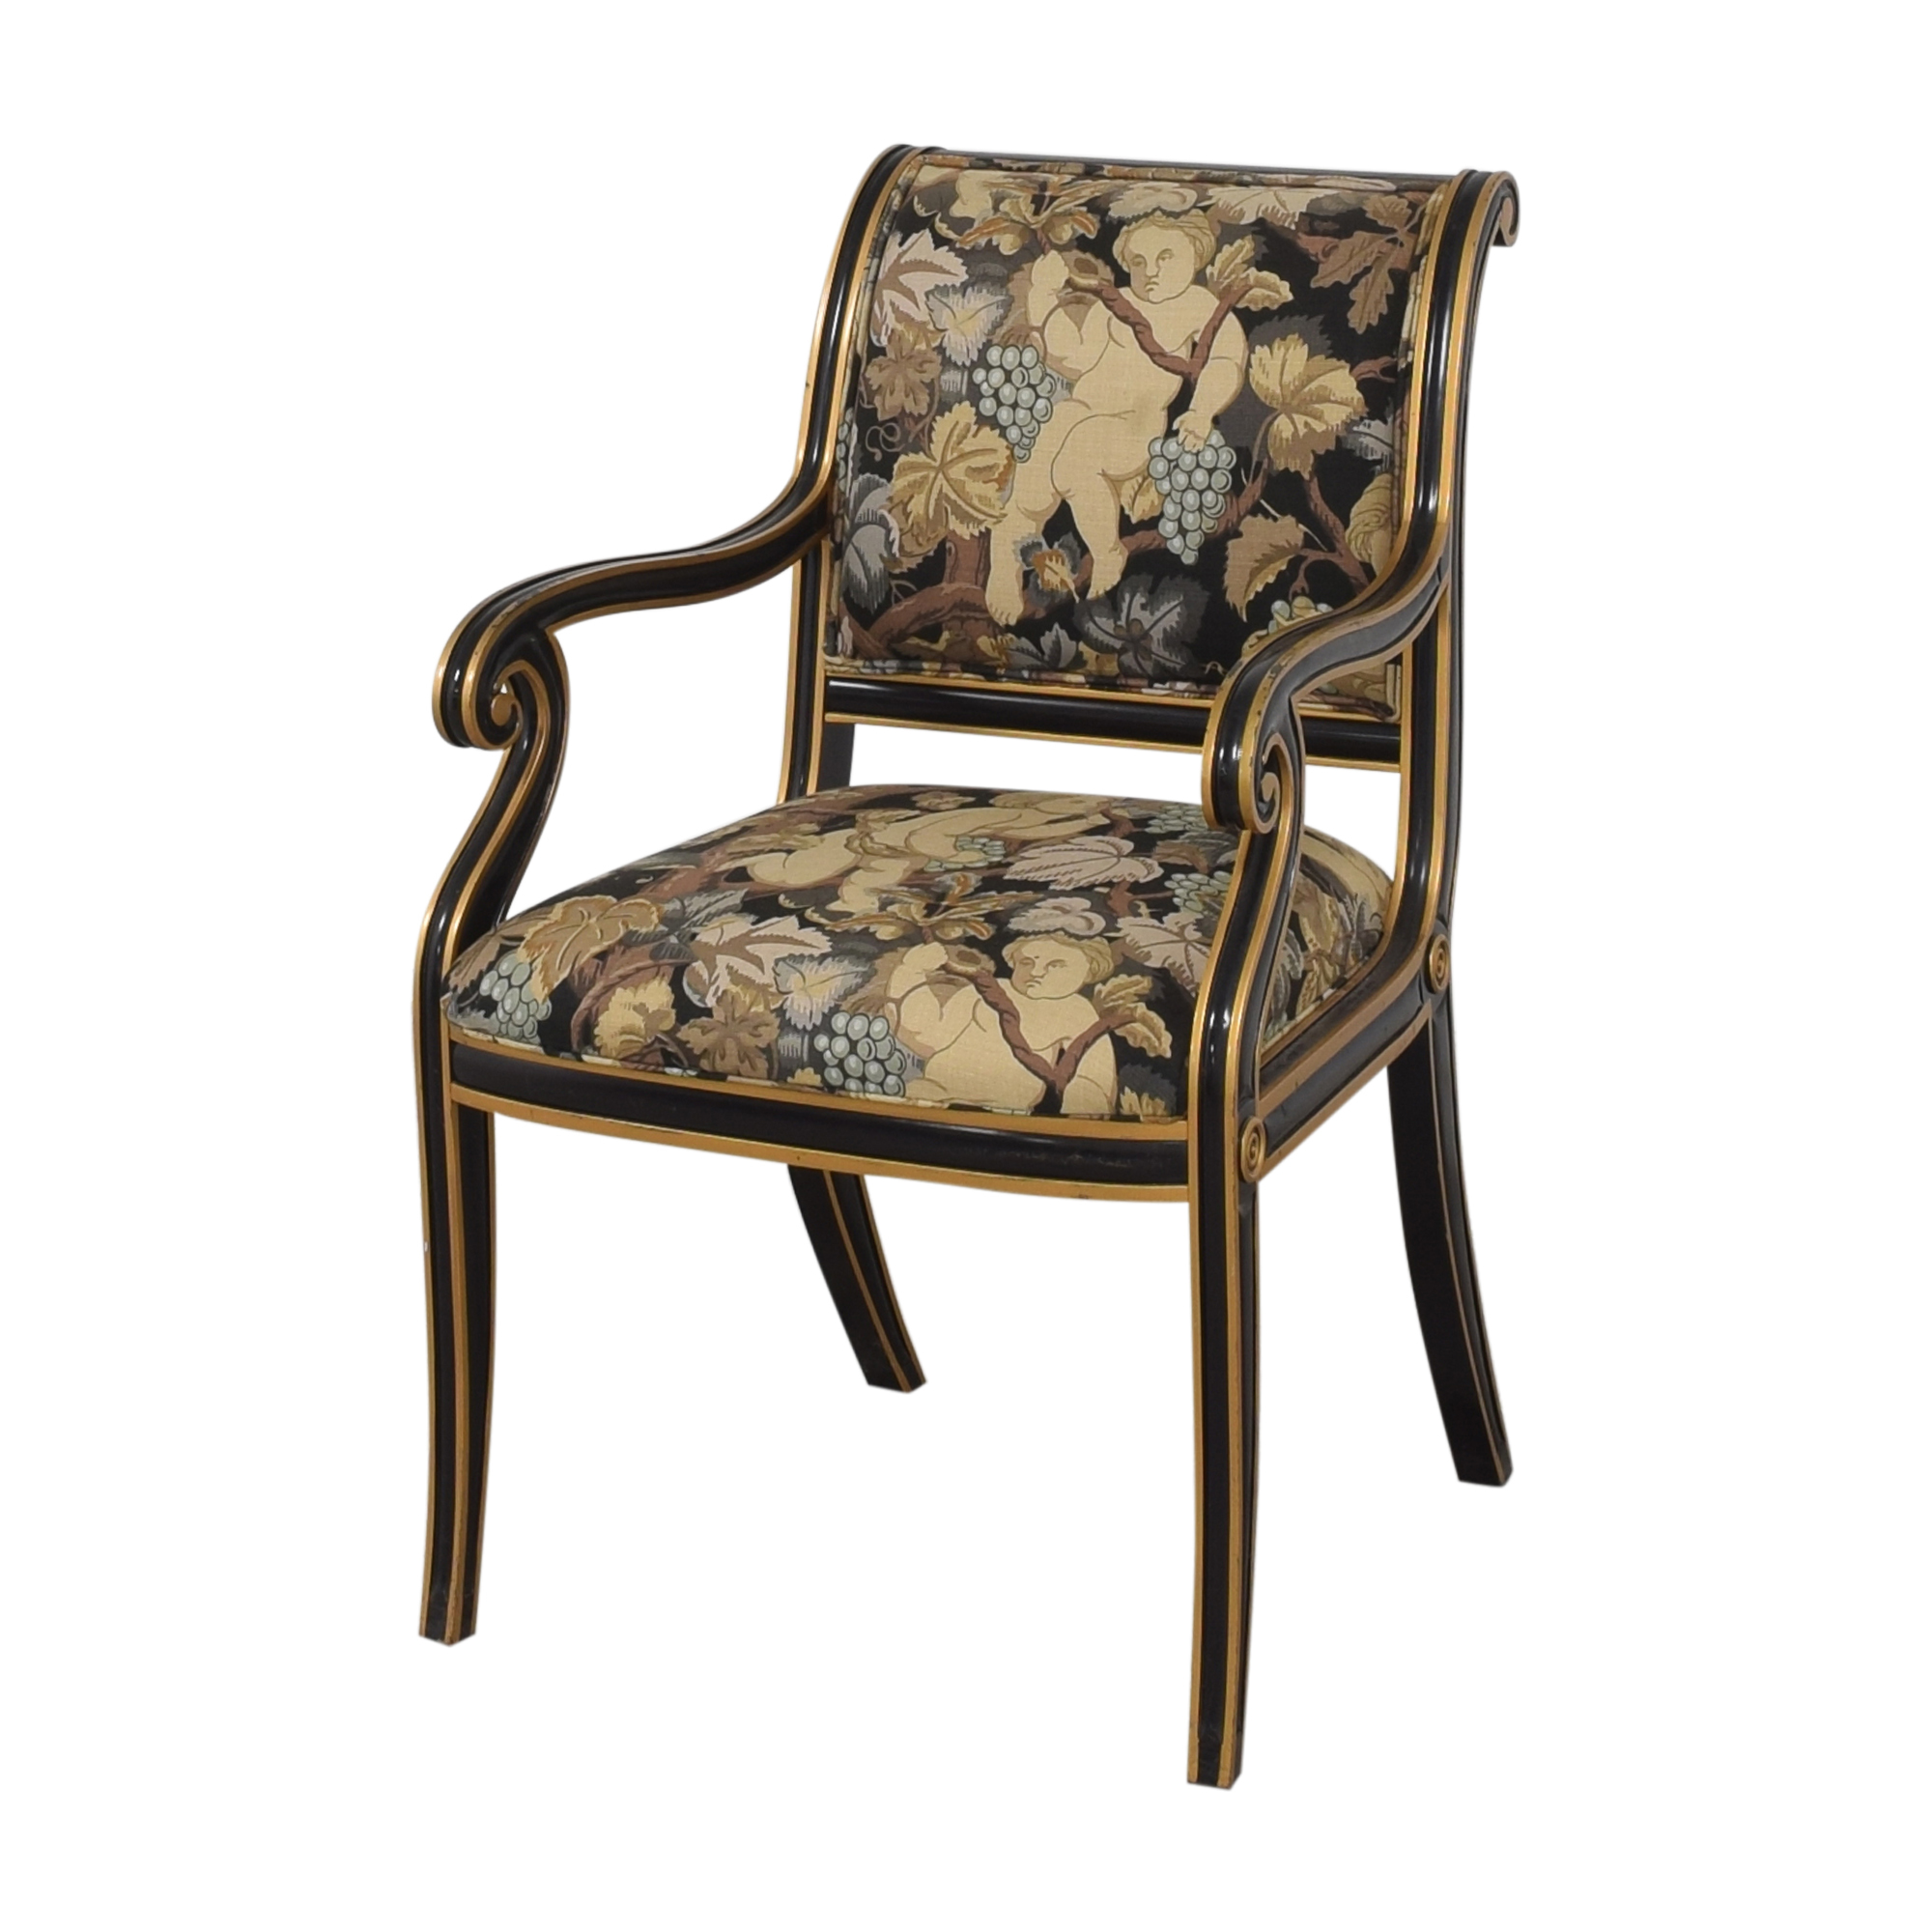 buy Councill Councill Floral Scroll Dining Arm Chairs online